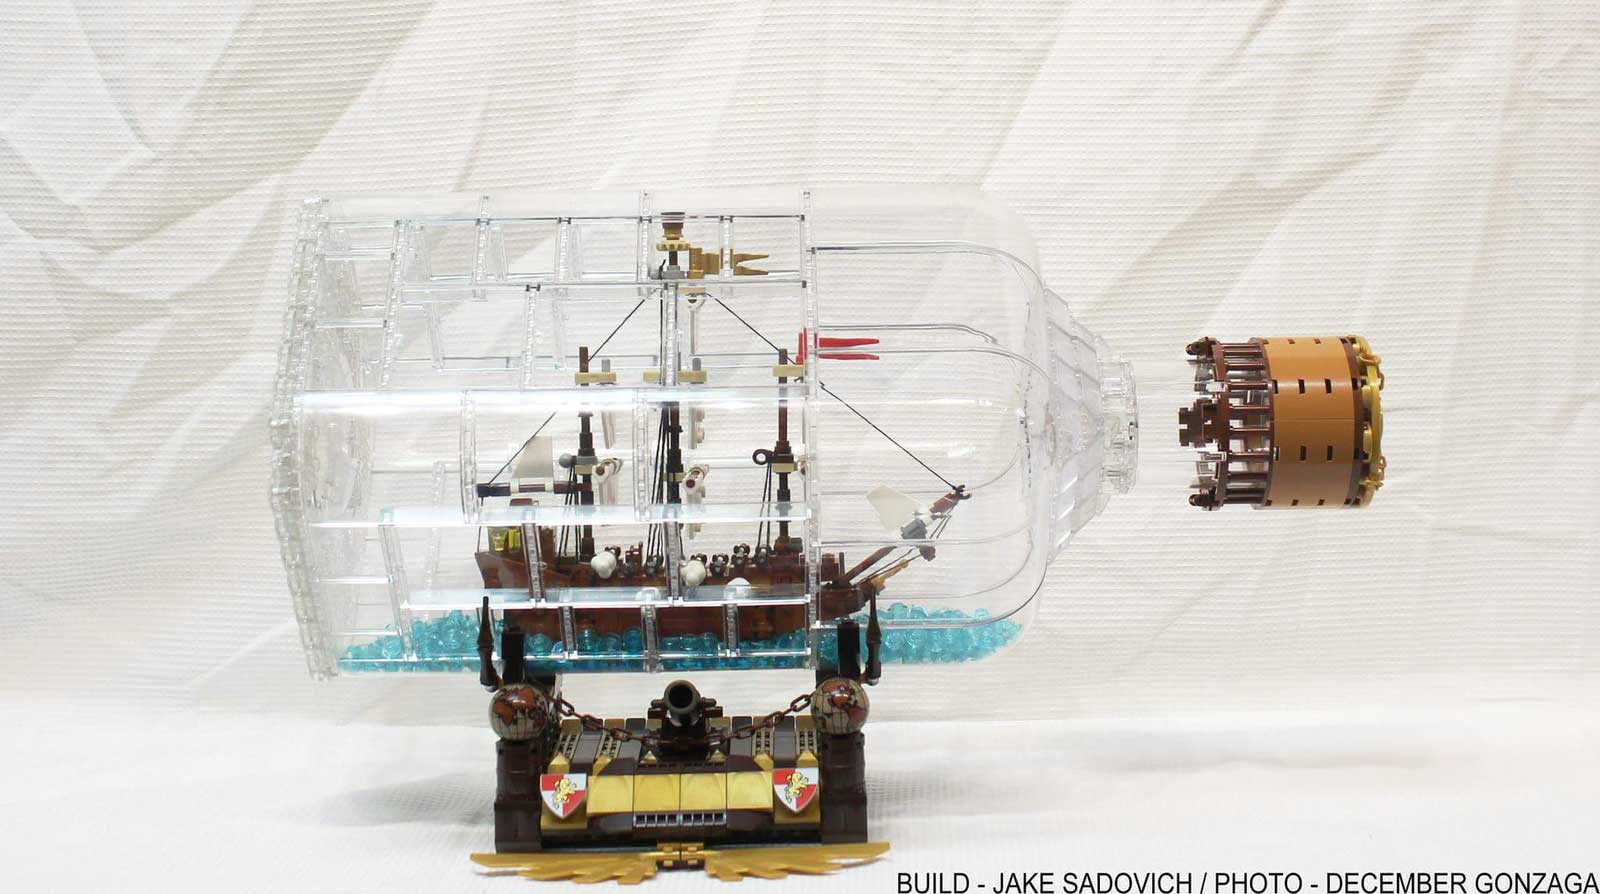 LEGO Ideas ship in a bottle - Leviathan